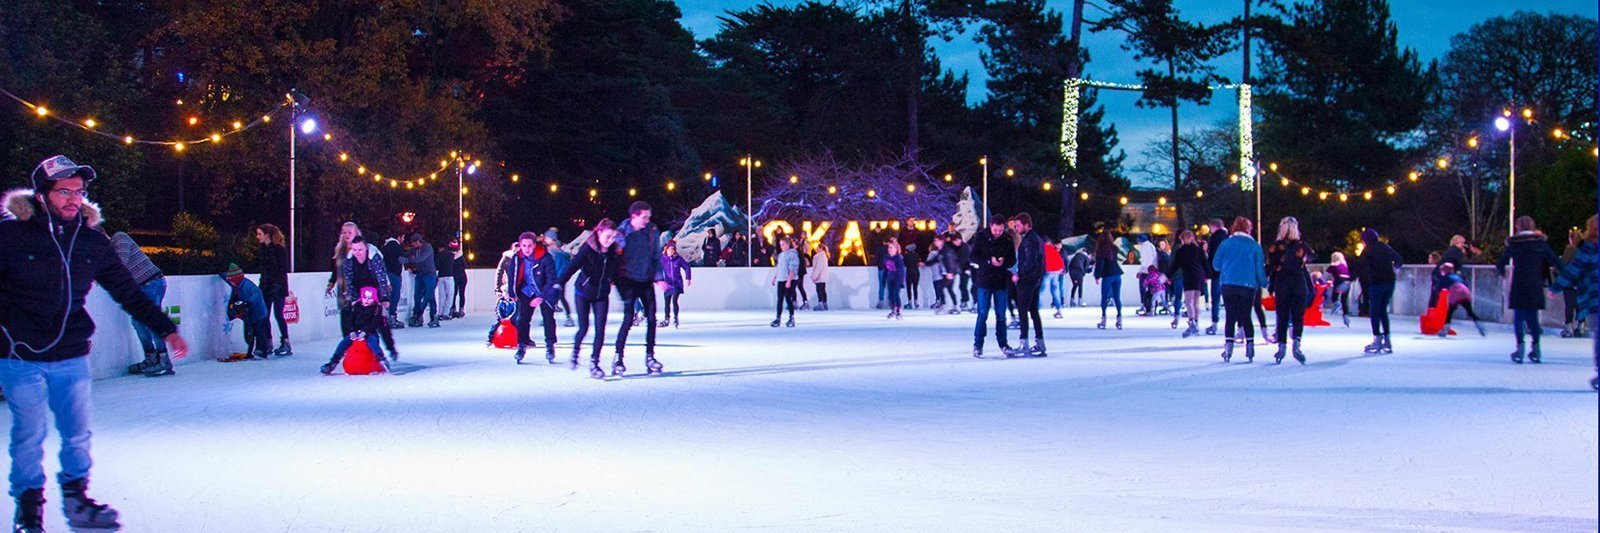 Bournemouth Ice Rink